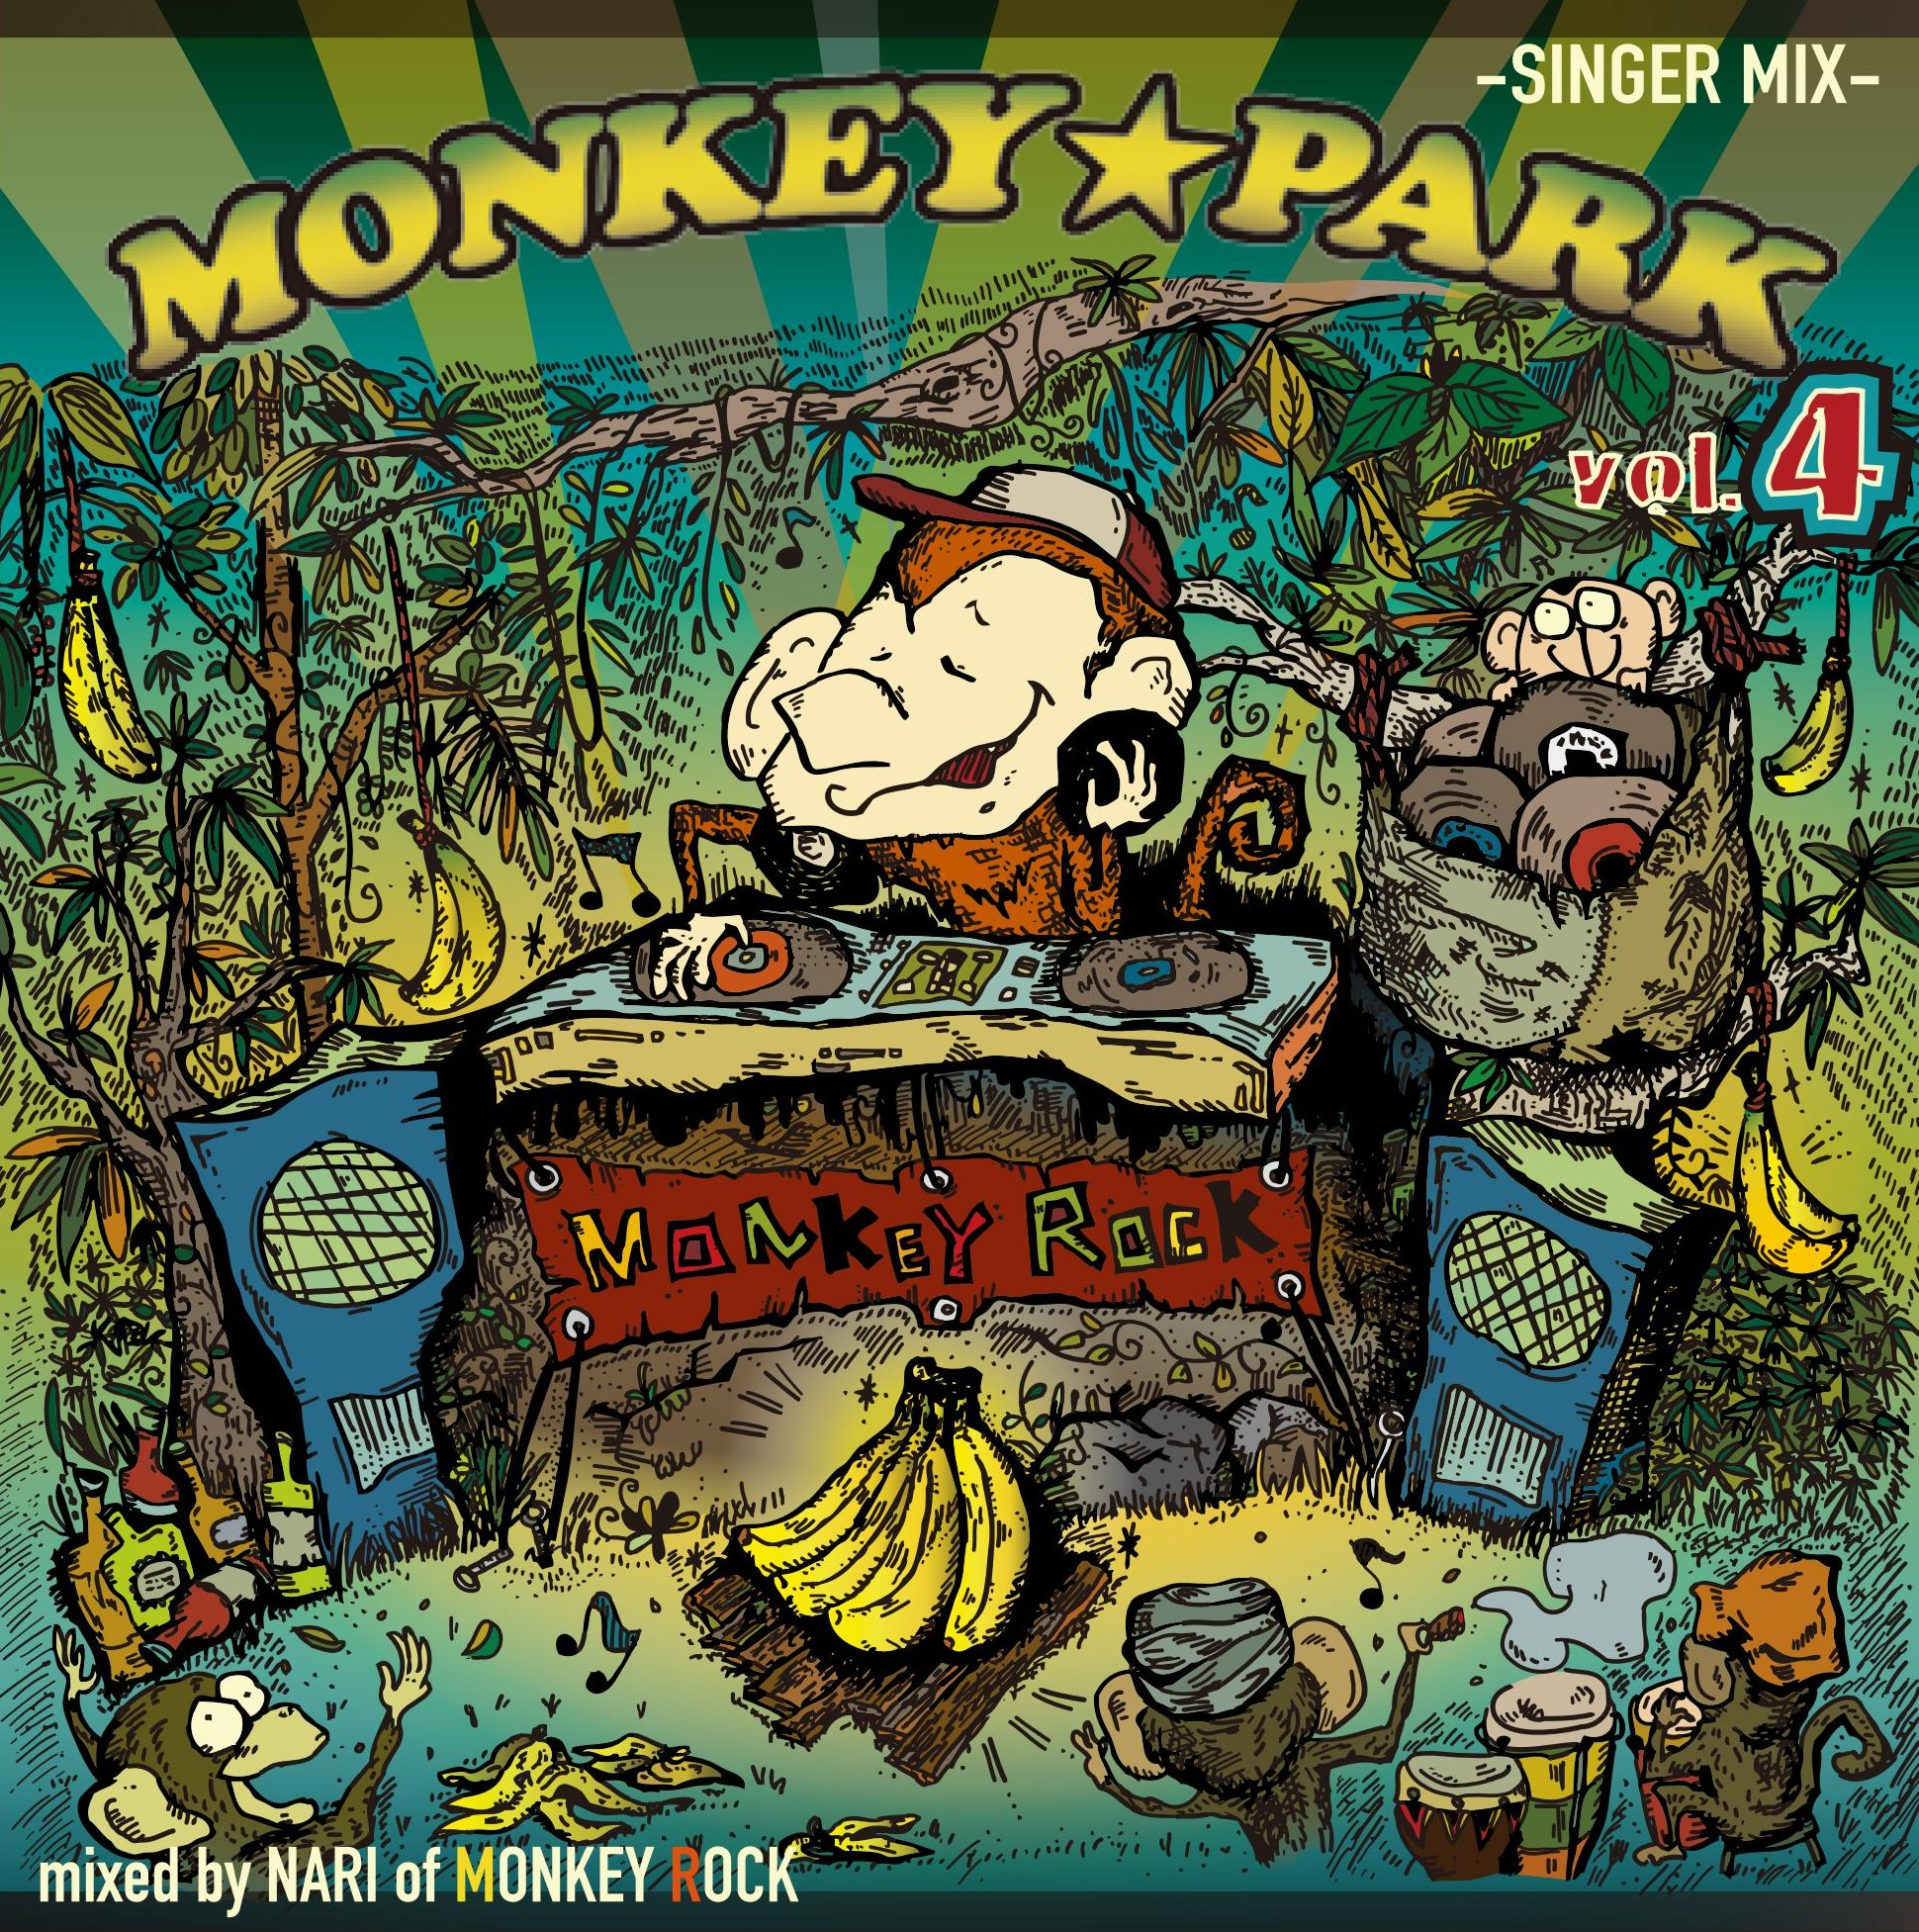 MONKEY ROCK / MONKEY PARK Vol.4 -SINGER MIX-